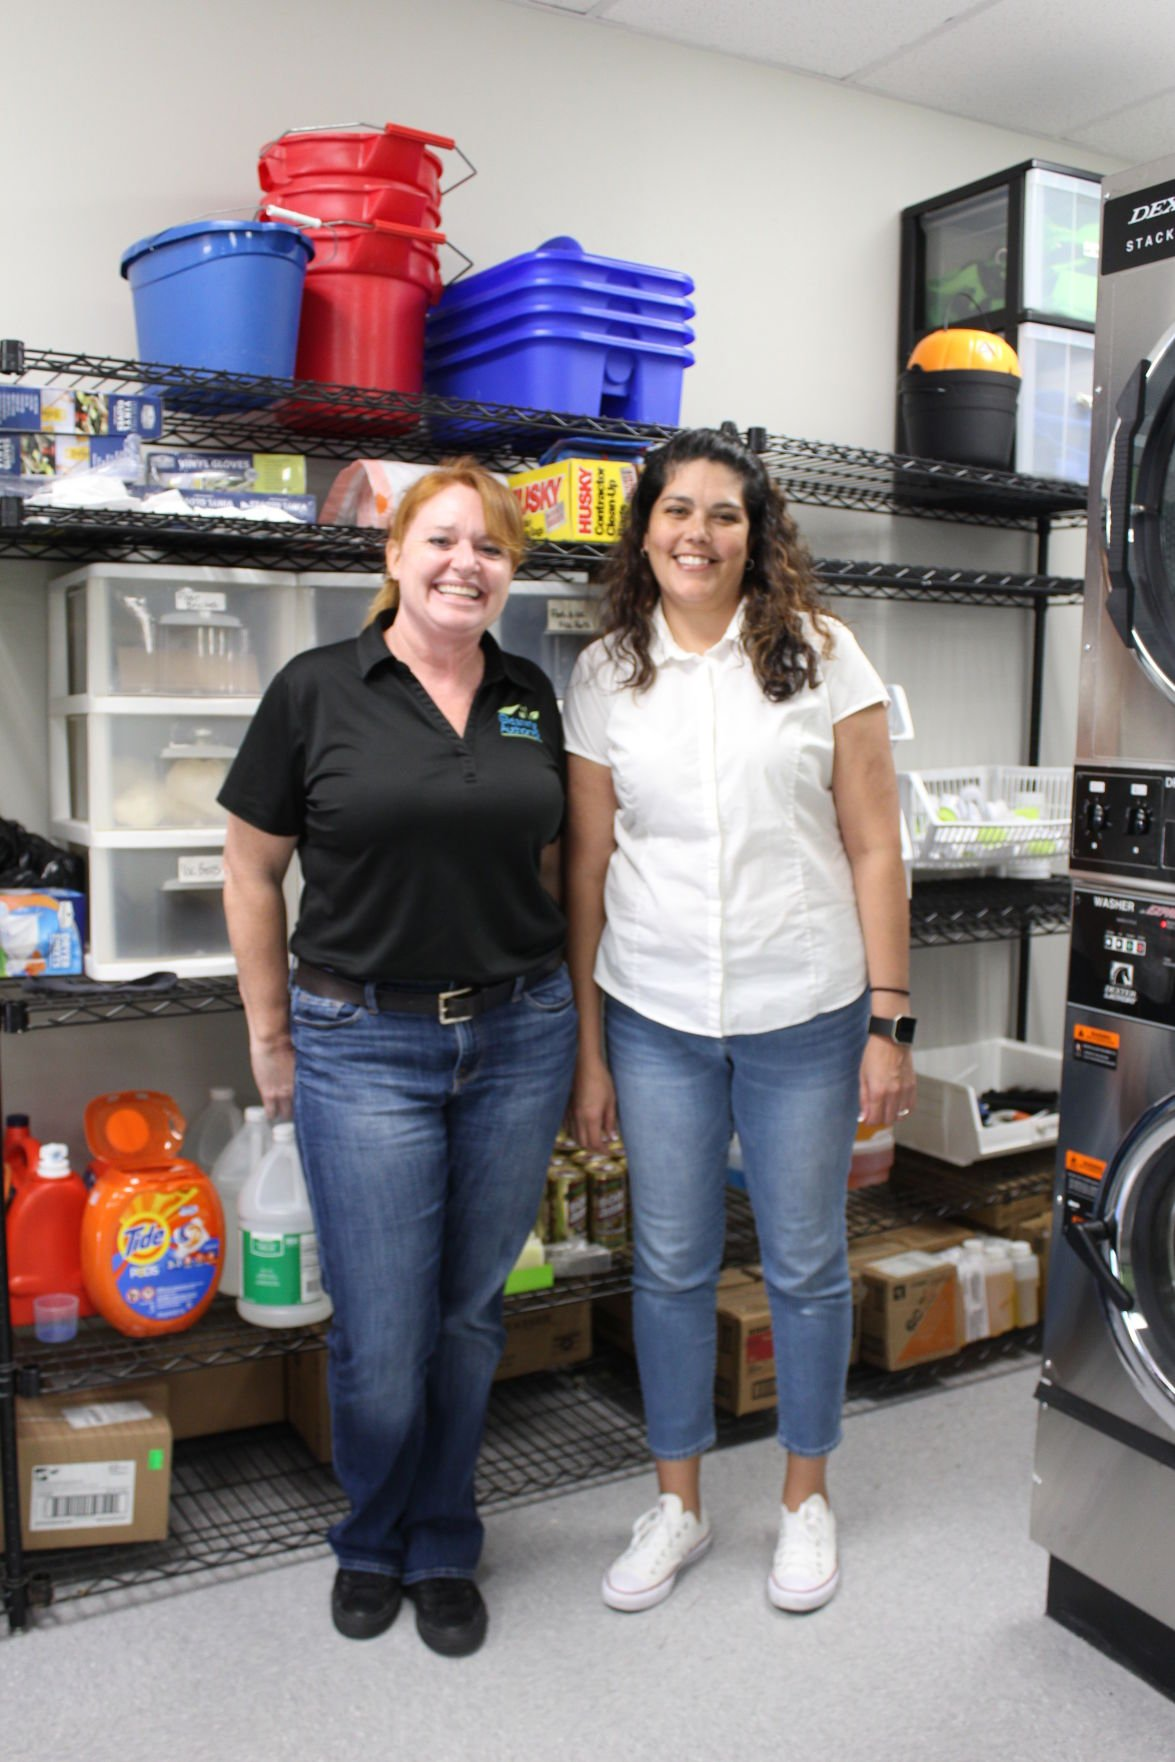 local cleaning company offers free service for women with